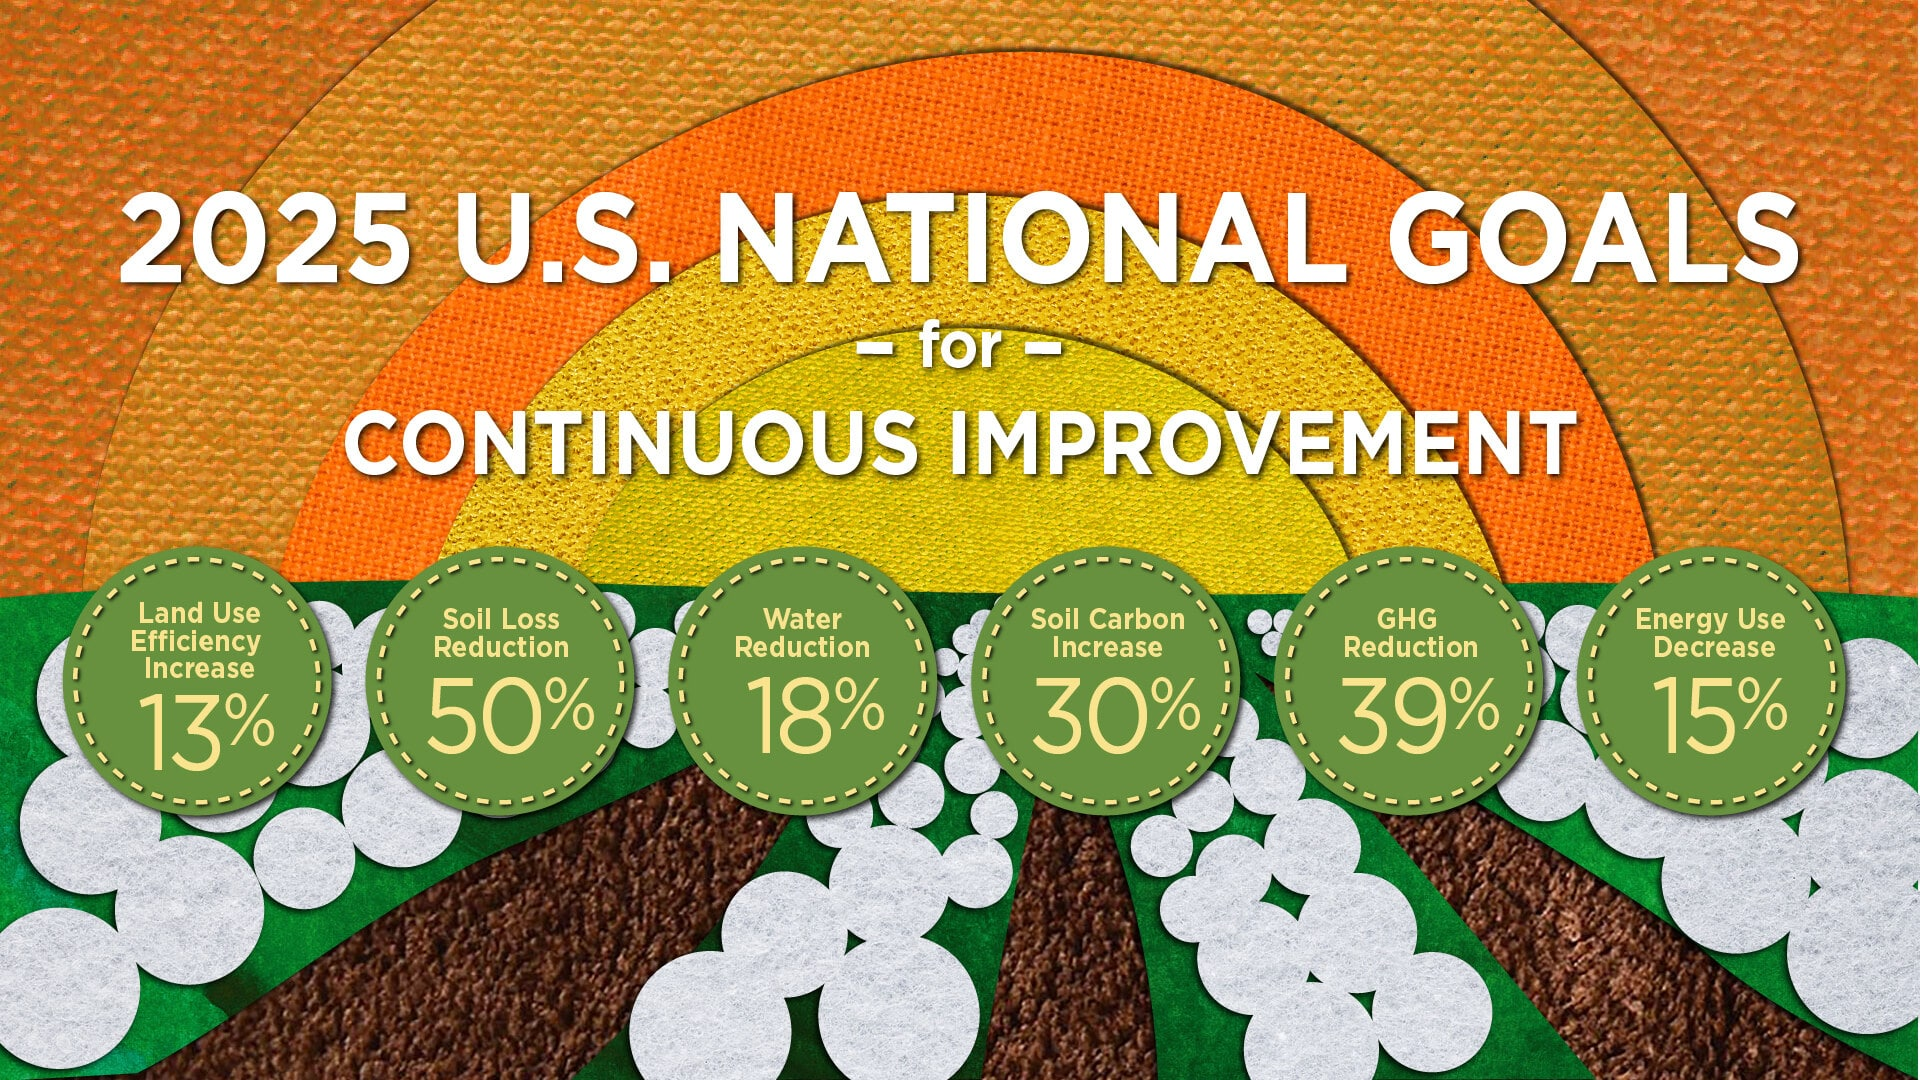 2025 U.S. national goals are to reduce soil loss, water usage, and GHG while increasing land use efficiency and soil carbon.